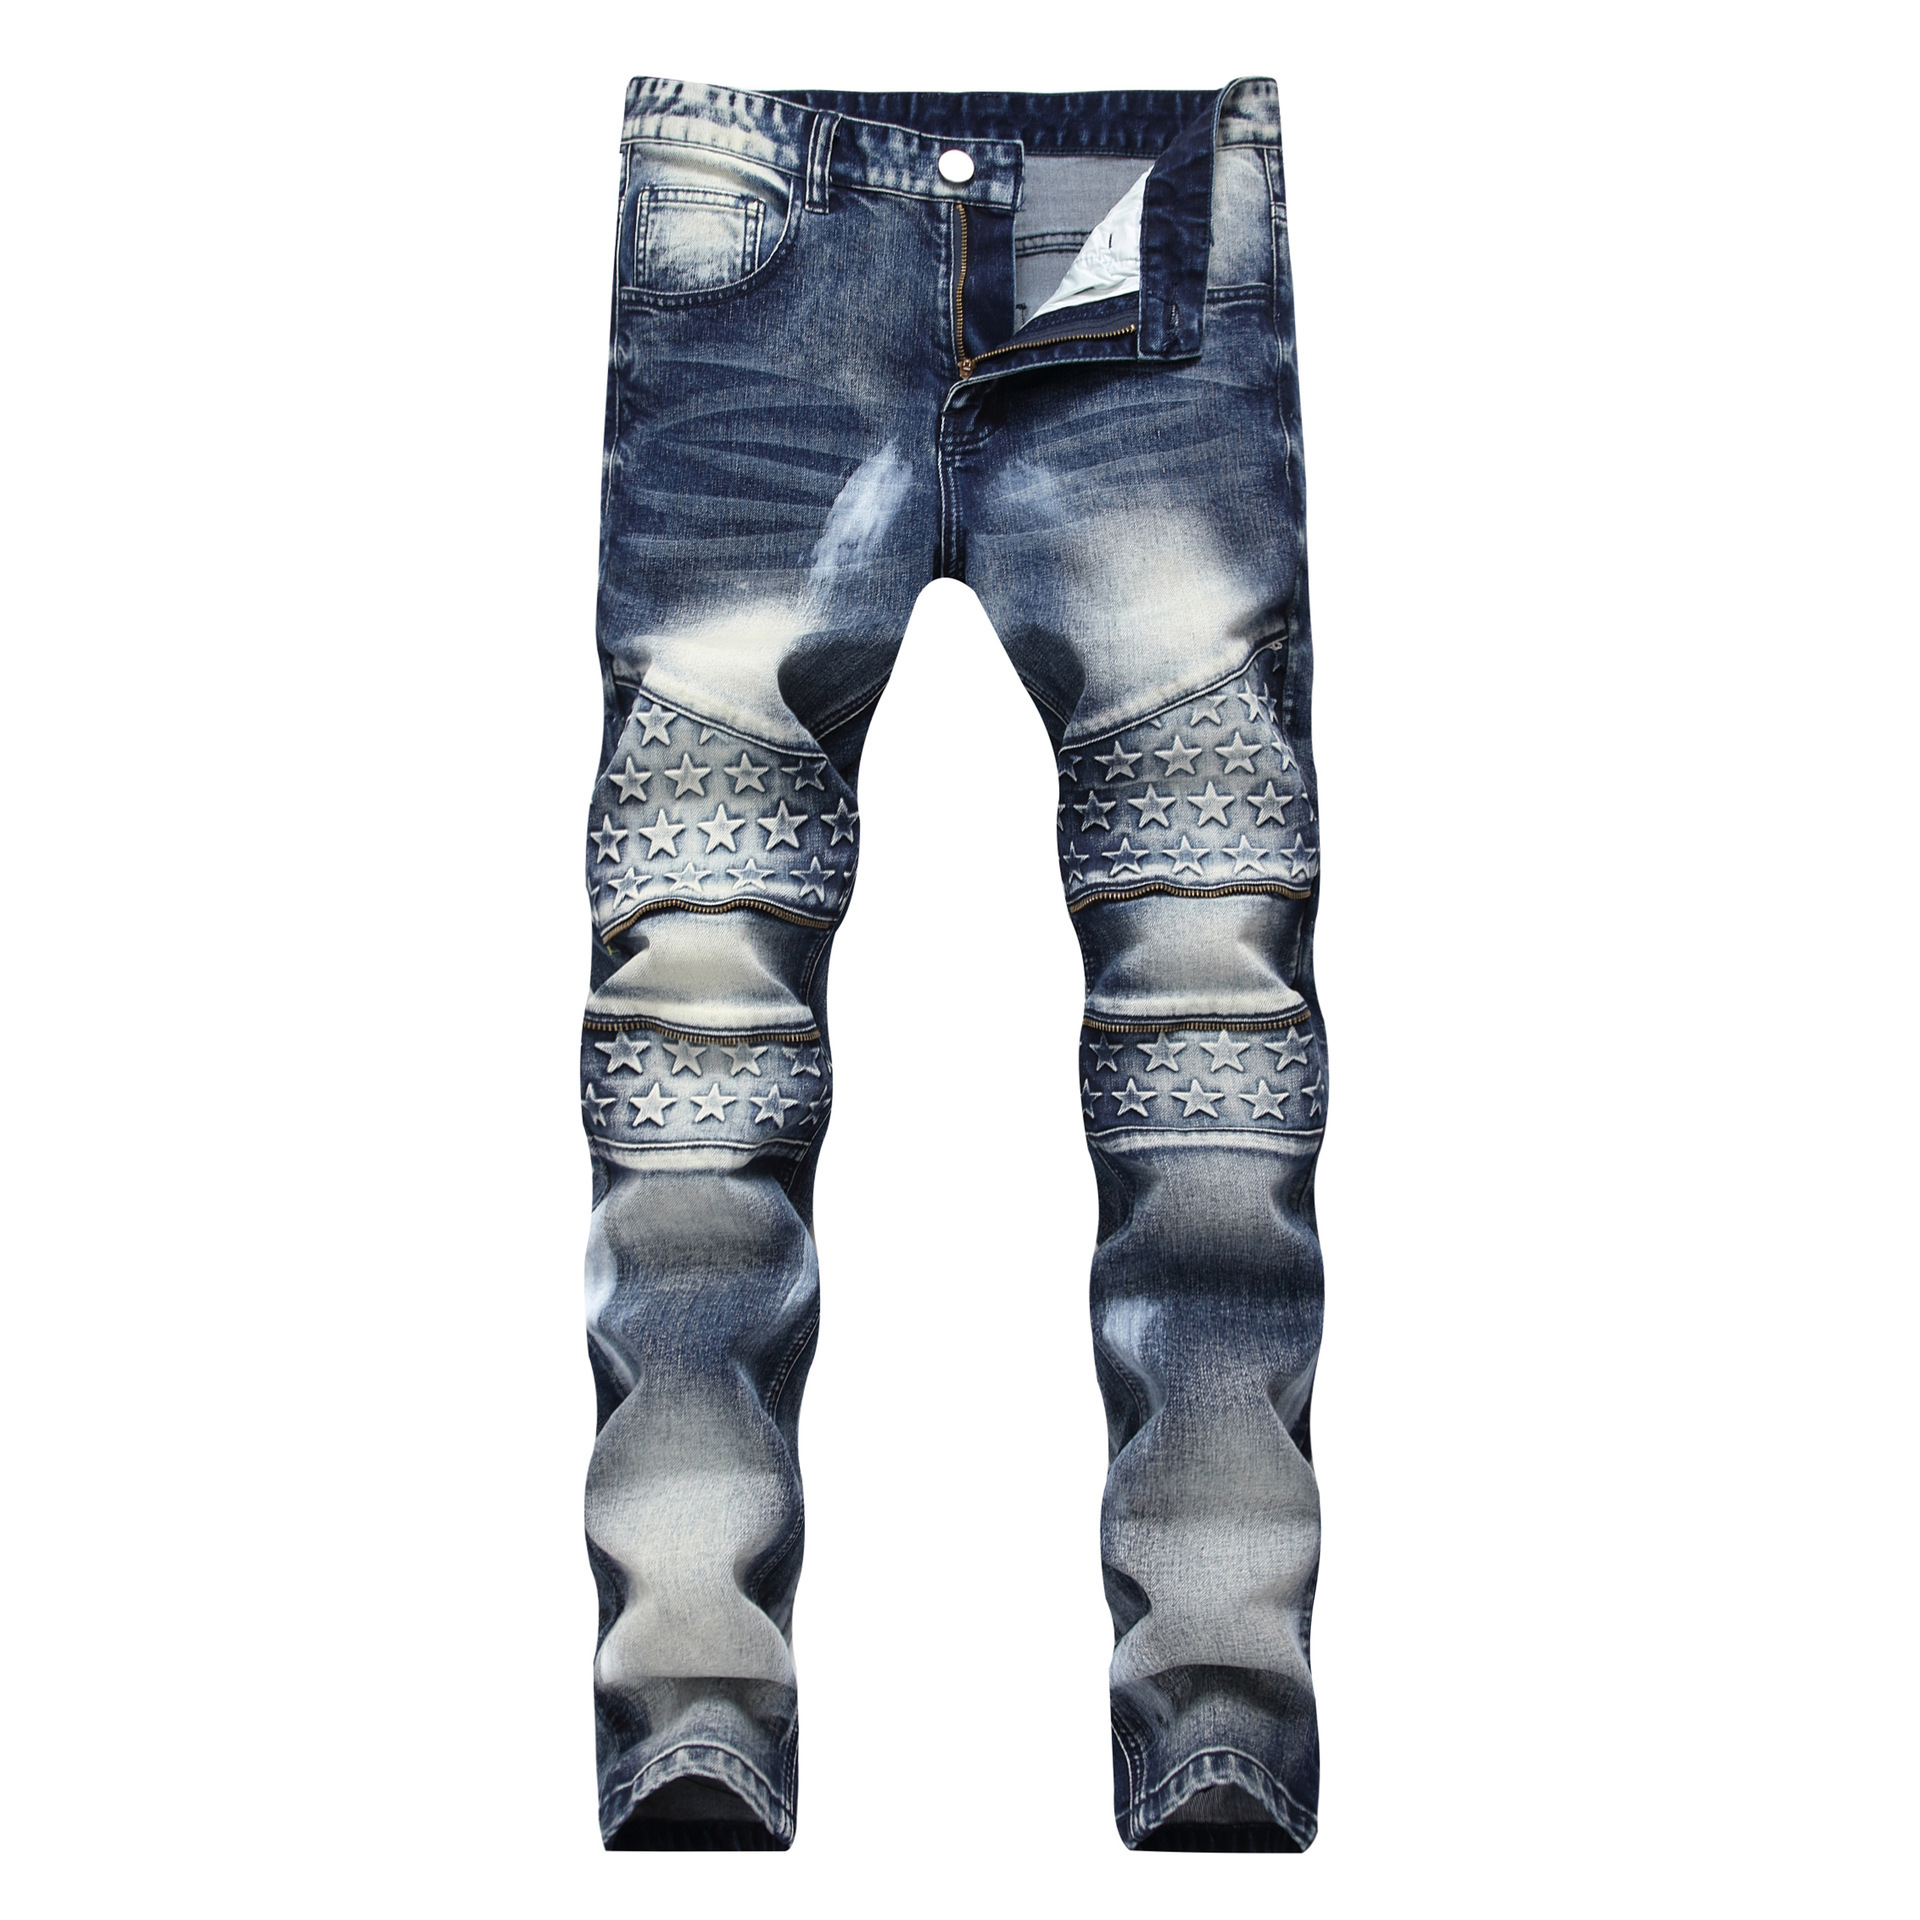 Europe And America MEN'S Jeans Retro Zipper Decorations Elasticity Straight Slim Ink Large Size Trousers